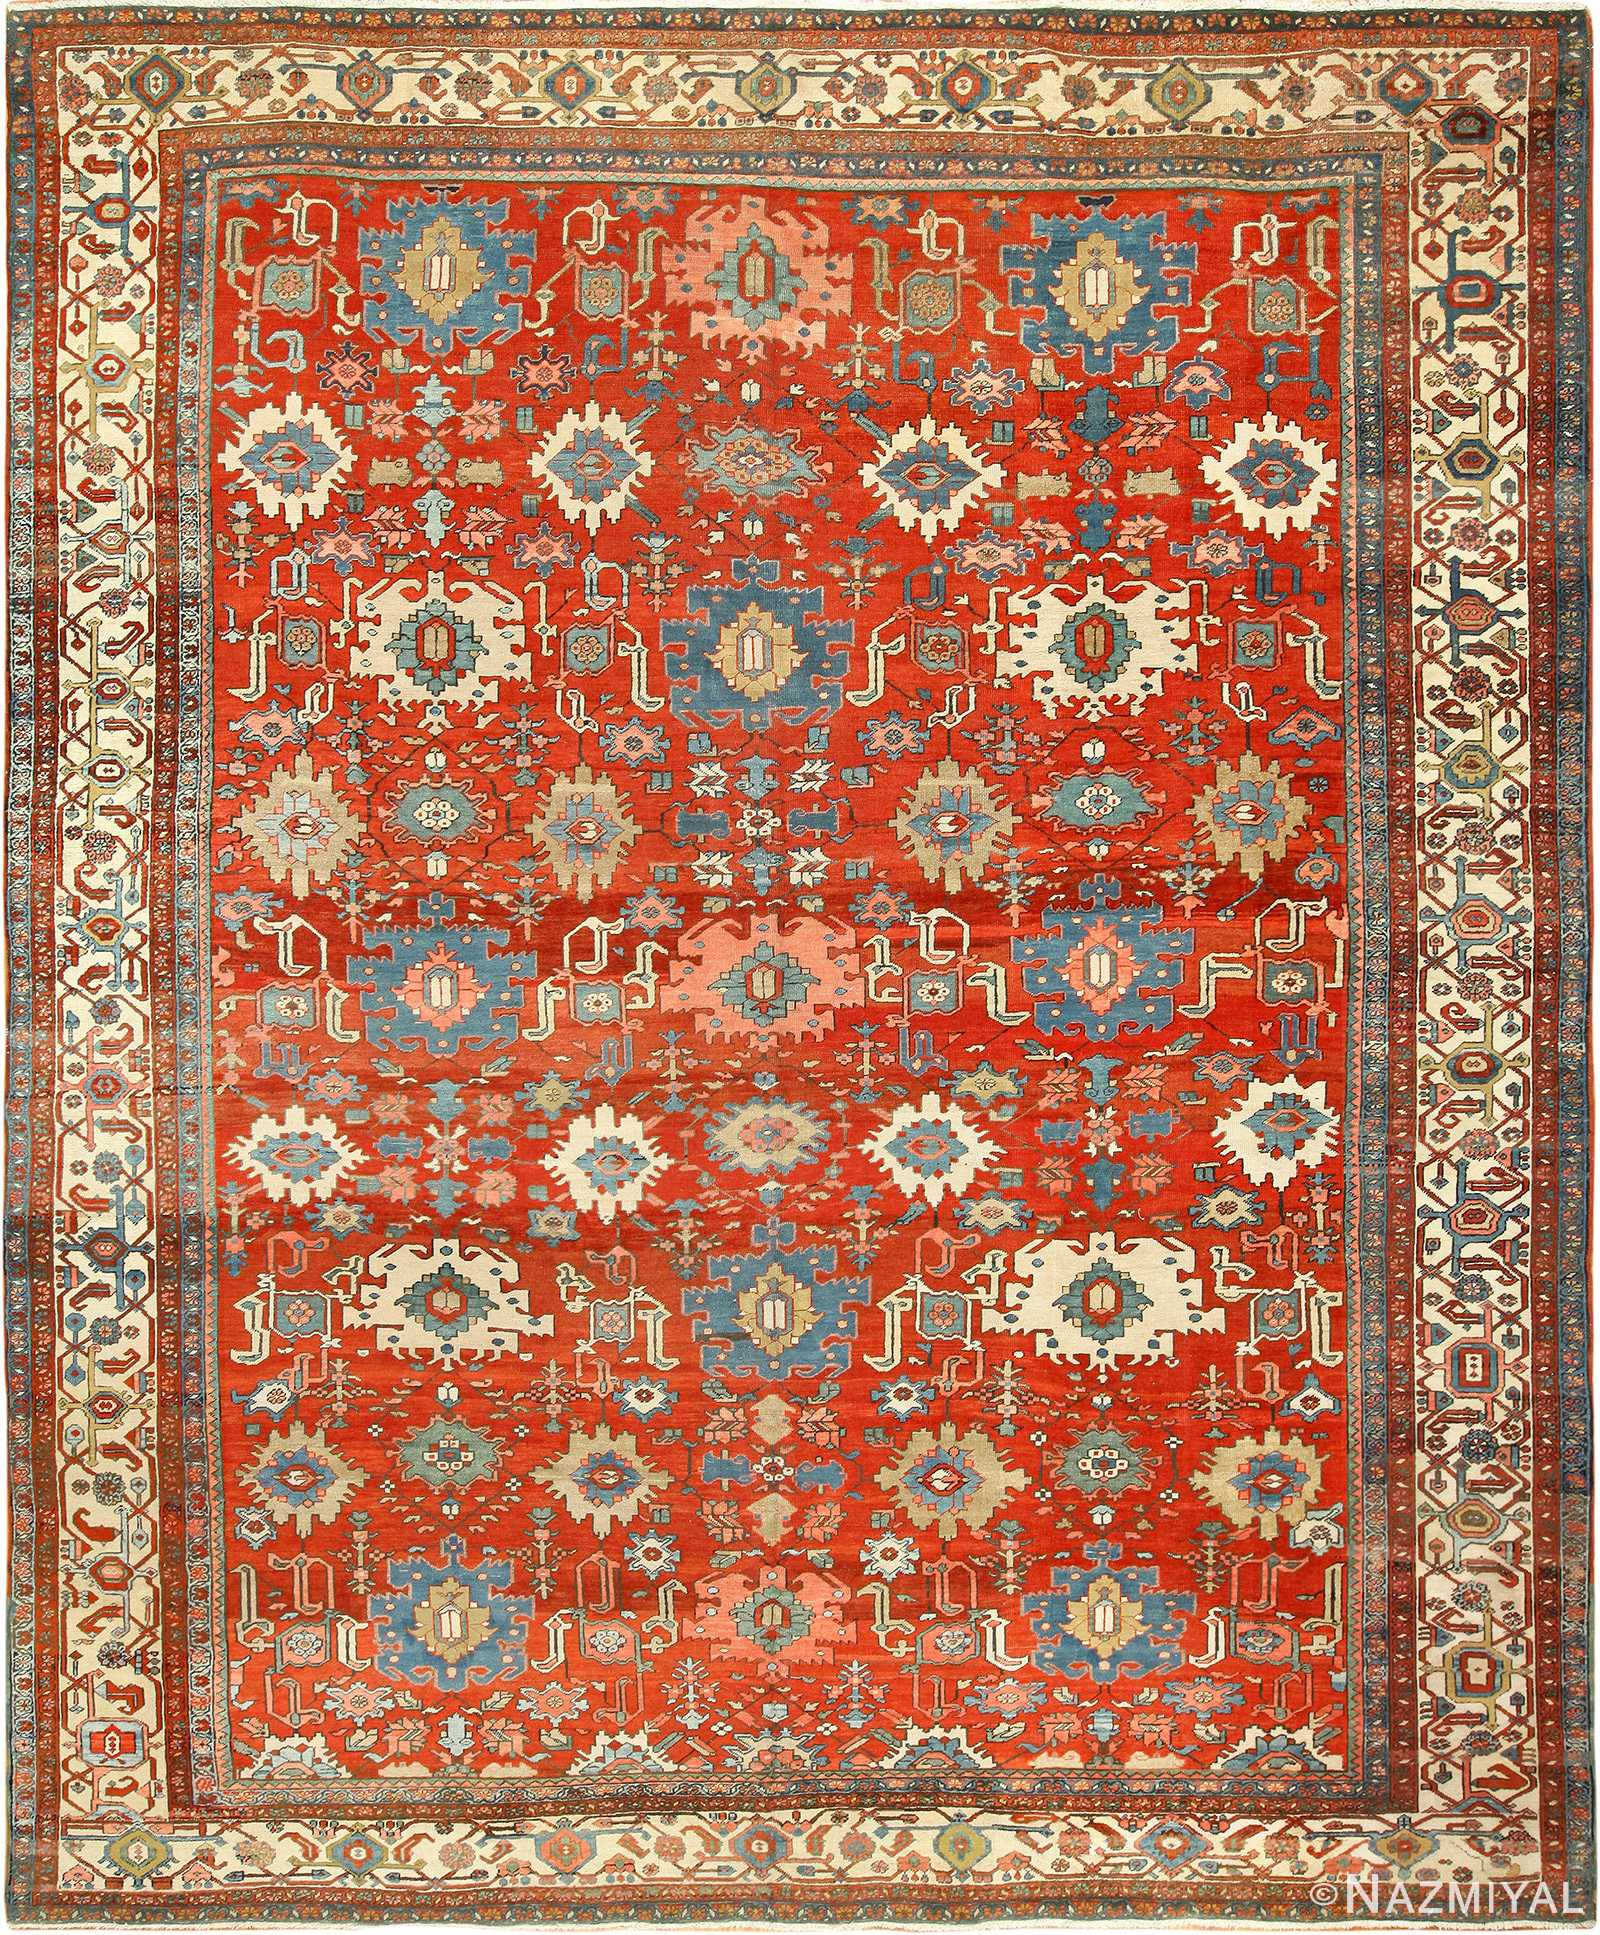 Antique Red Room Size Persian Bakshaish Rug 49393 By